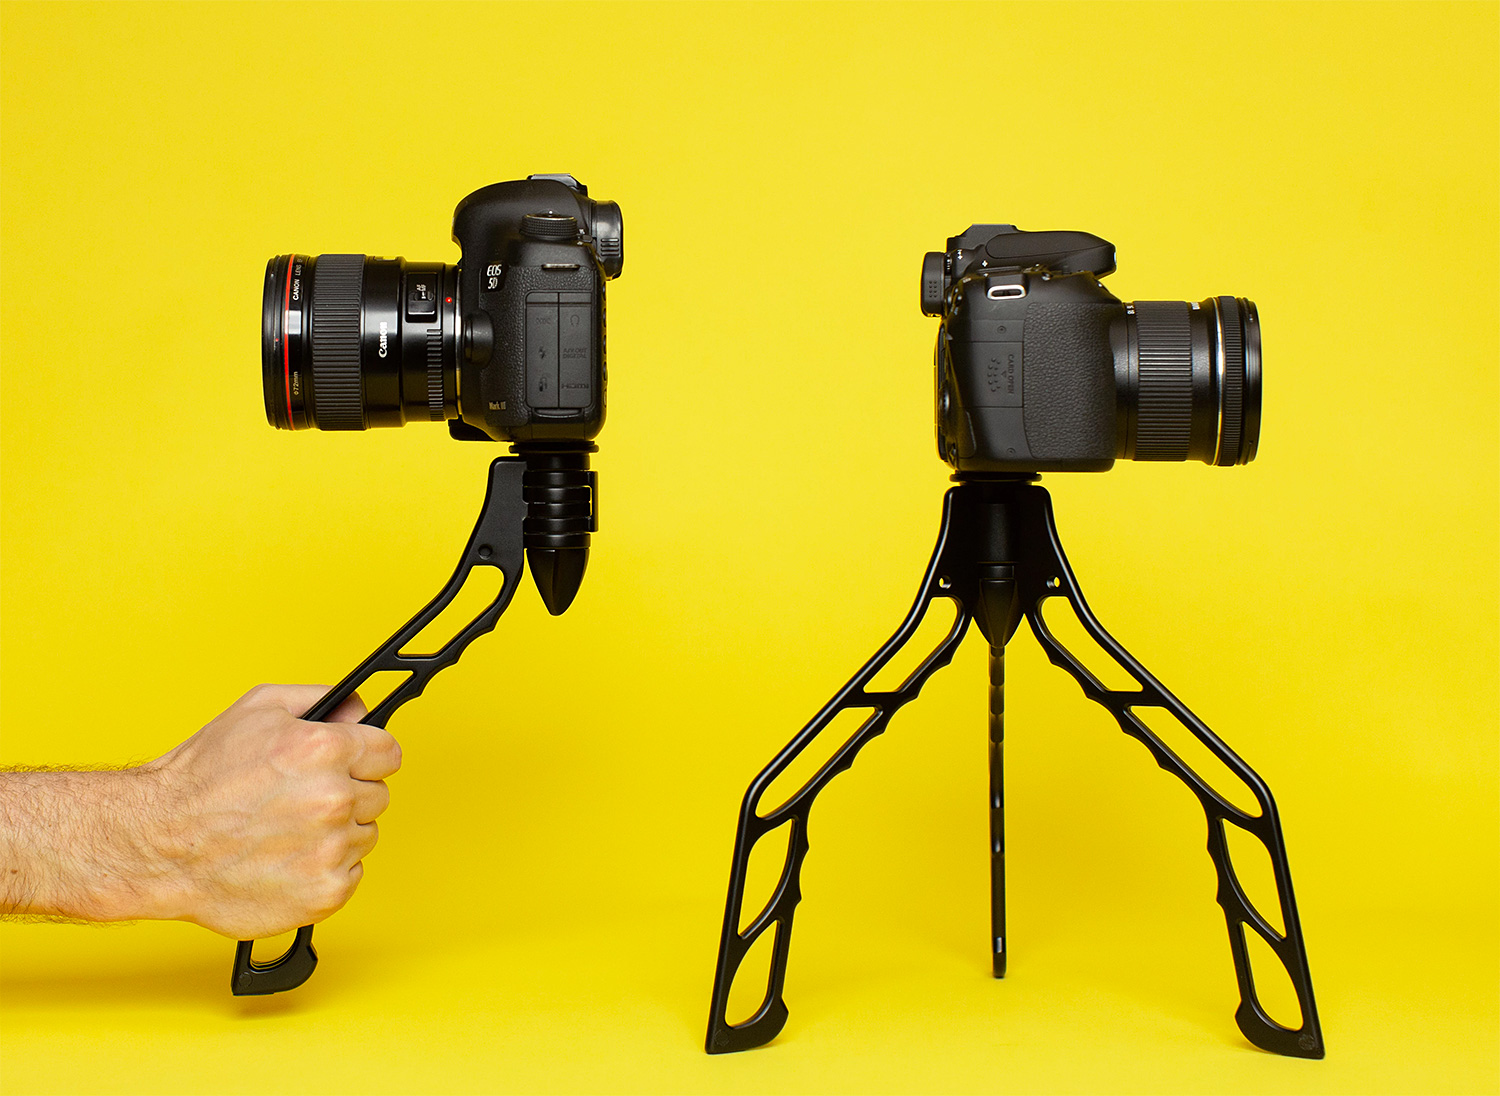 Step-Up Your Video Shoots with the SwitchPod Tripod at werd.com